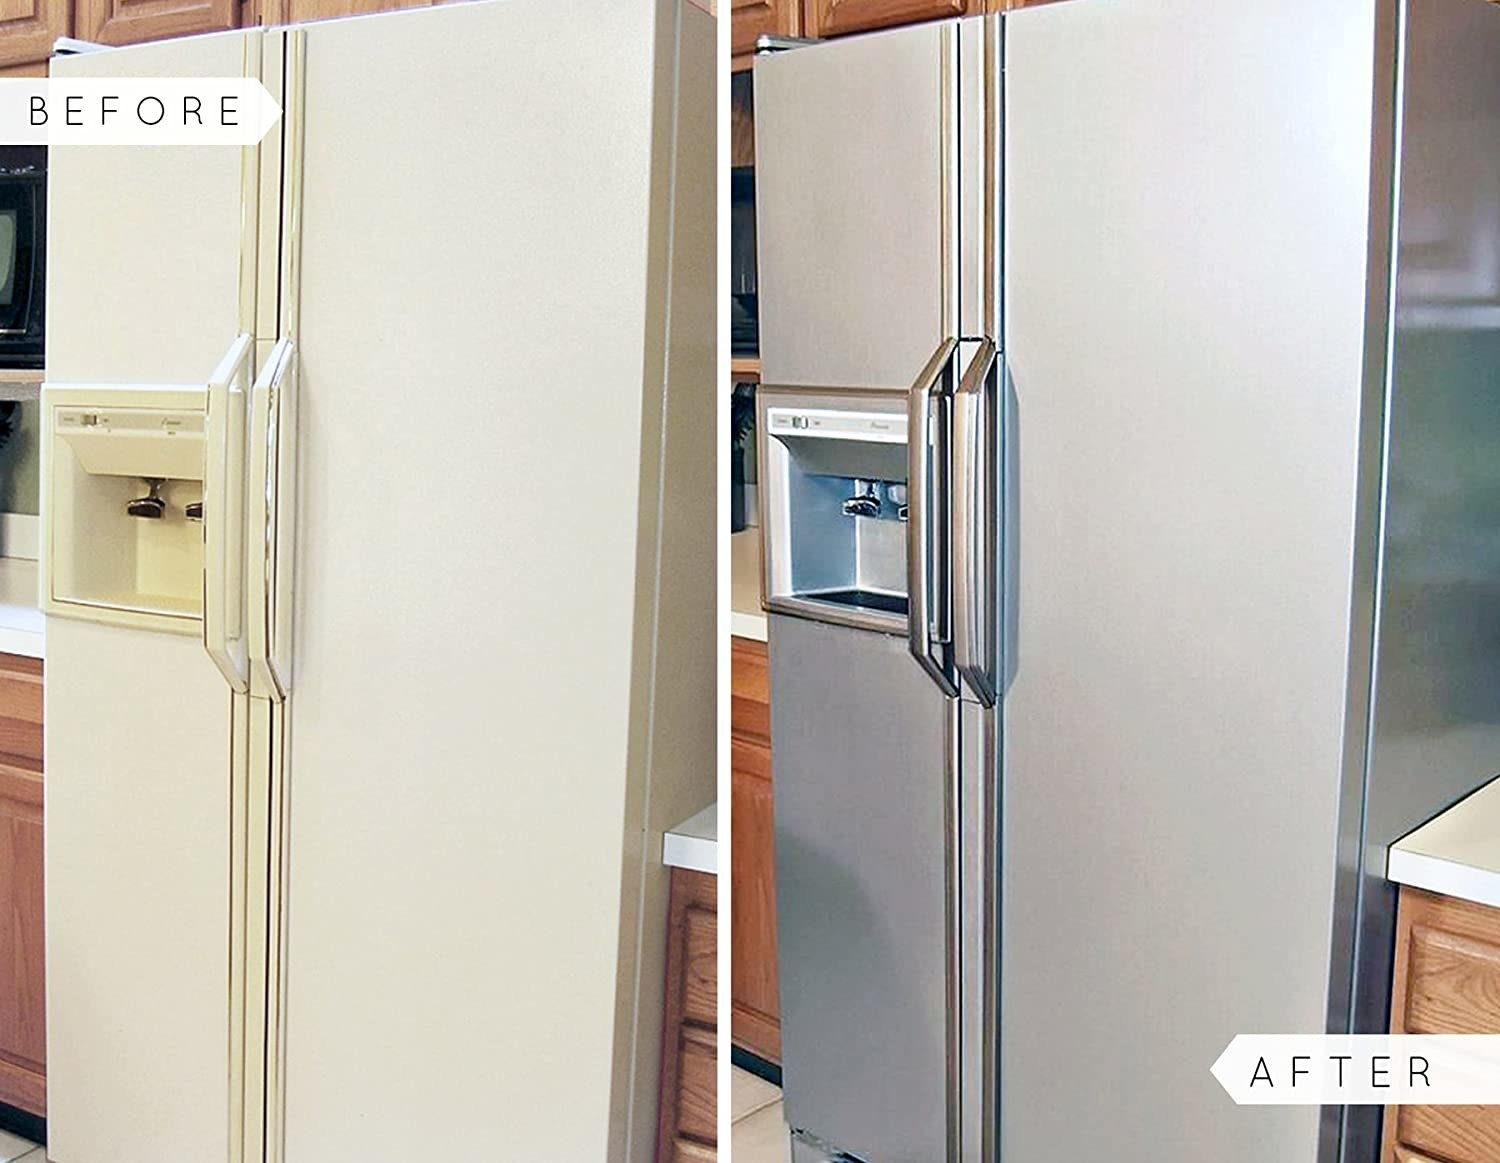 white fridge as a before and the same fridge painted to look like convincing stainless steel